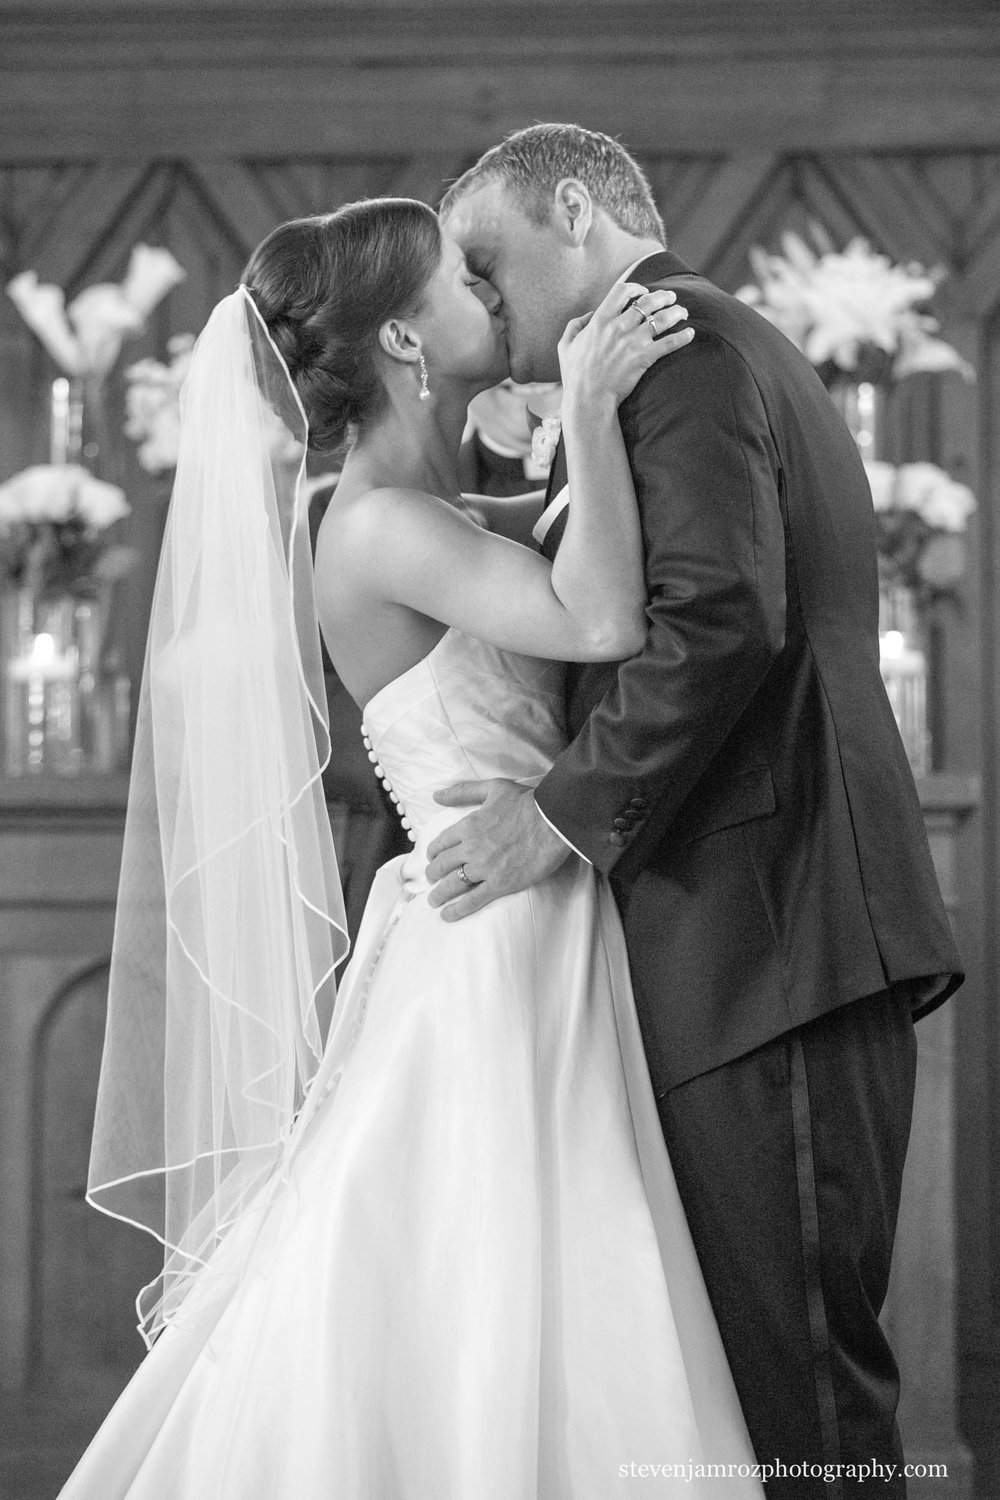 married-kiss-all-saints-chapel-raleigh-steven-jamroz-photography-0385.jpg